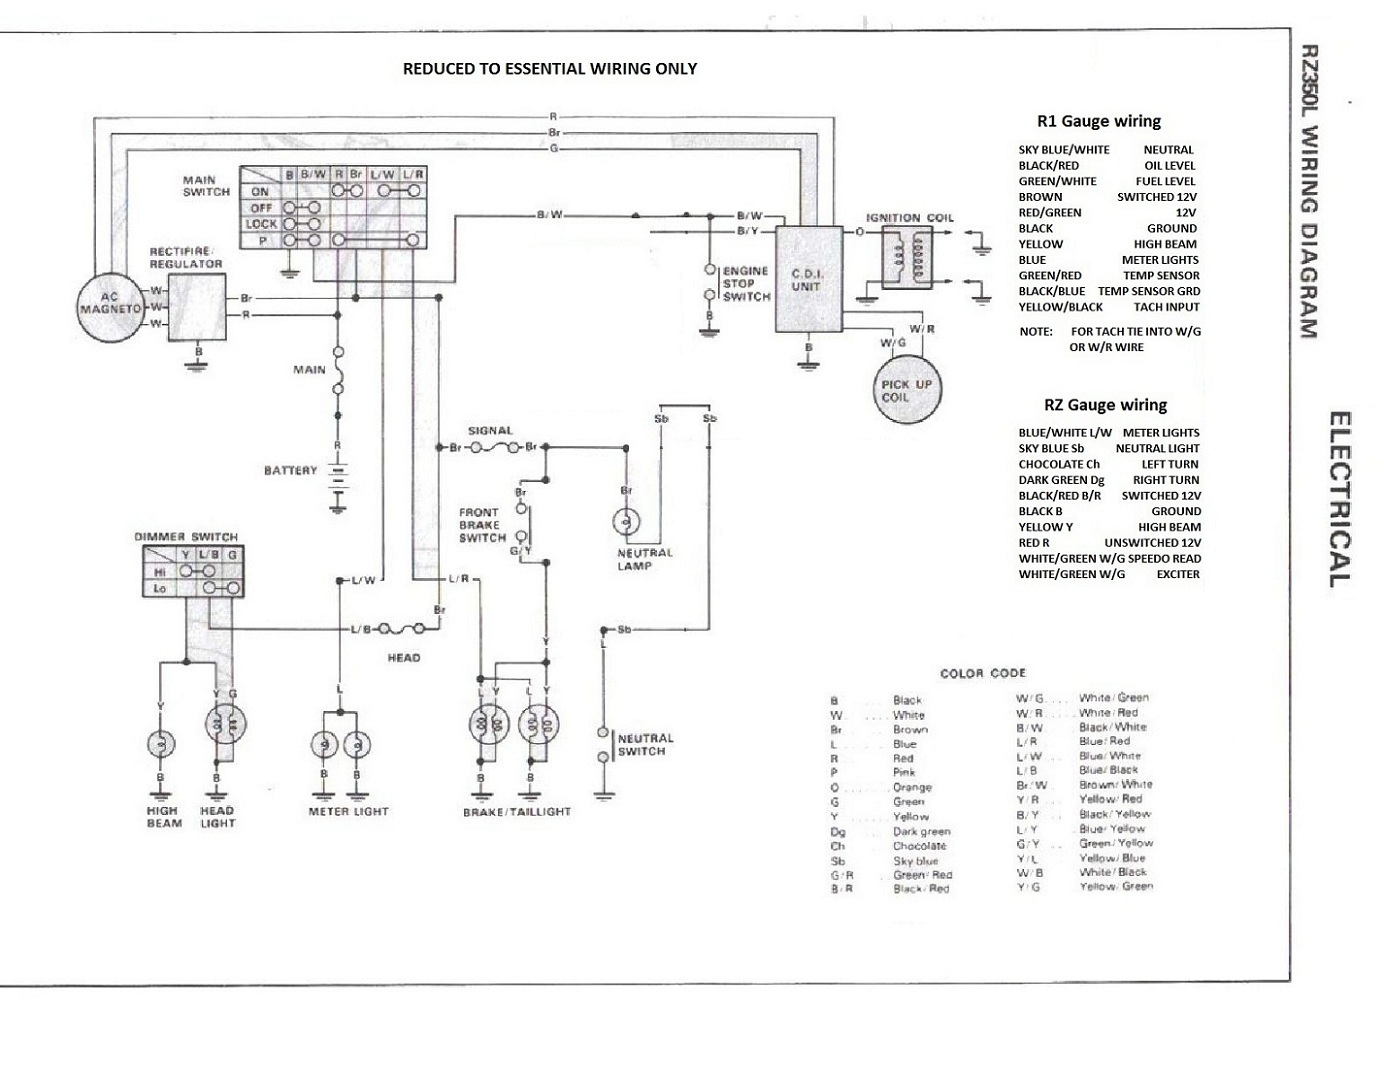 Husqvarna Rz5424 Wiring Diagram from www.rzrd500.com